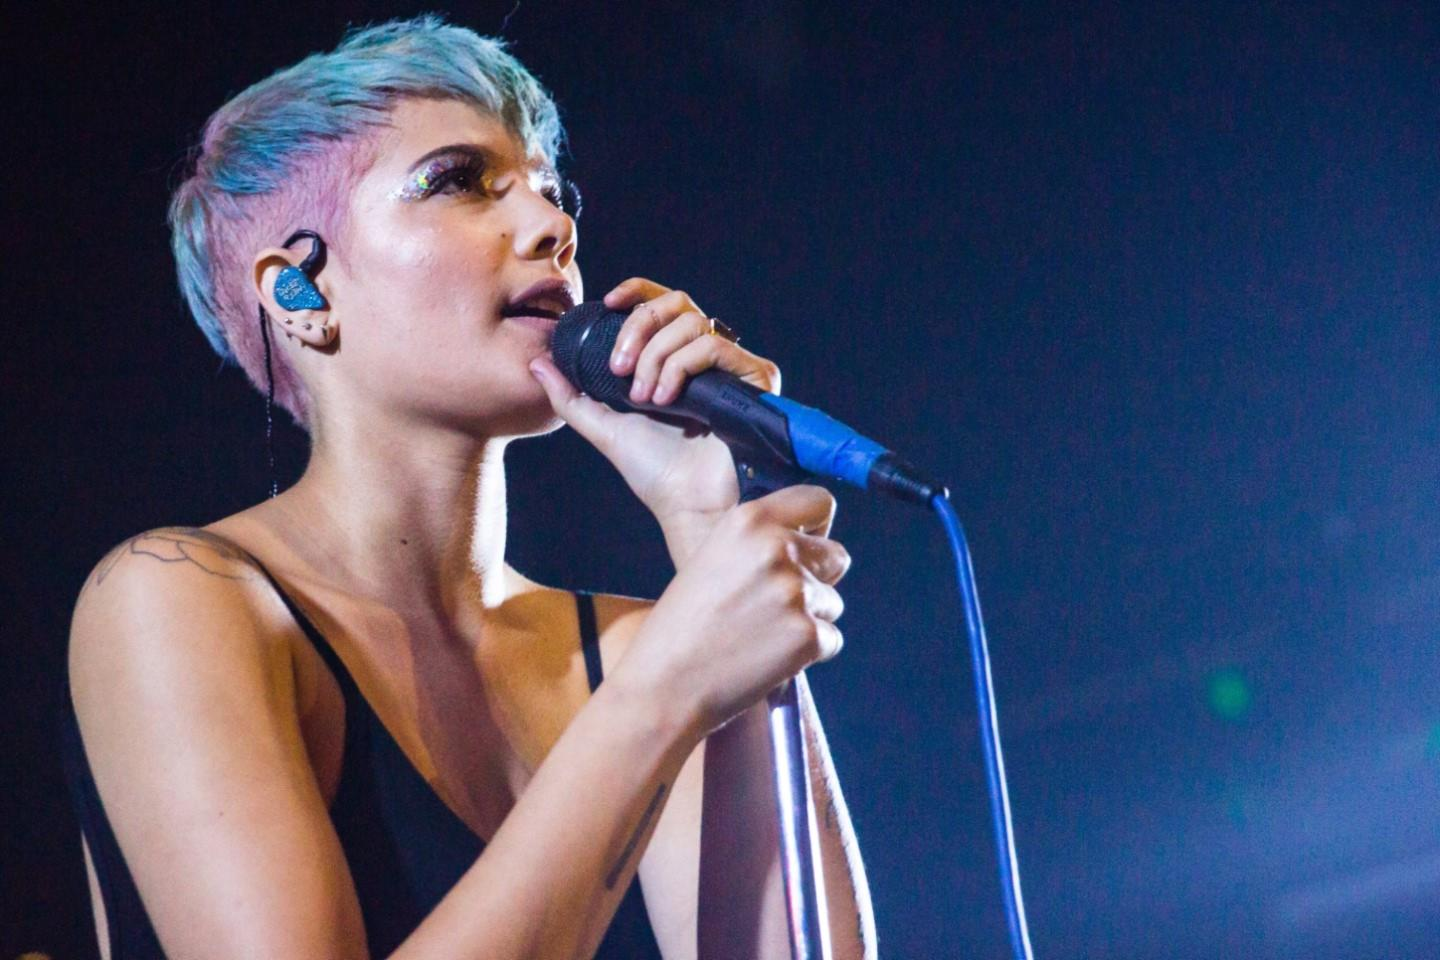 Is Halsey Problematic? A Look Into Her Social Media Presence